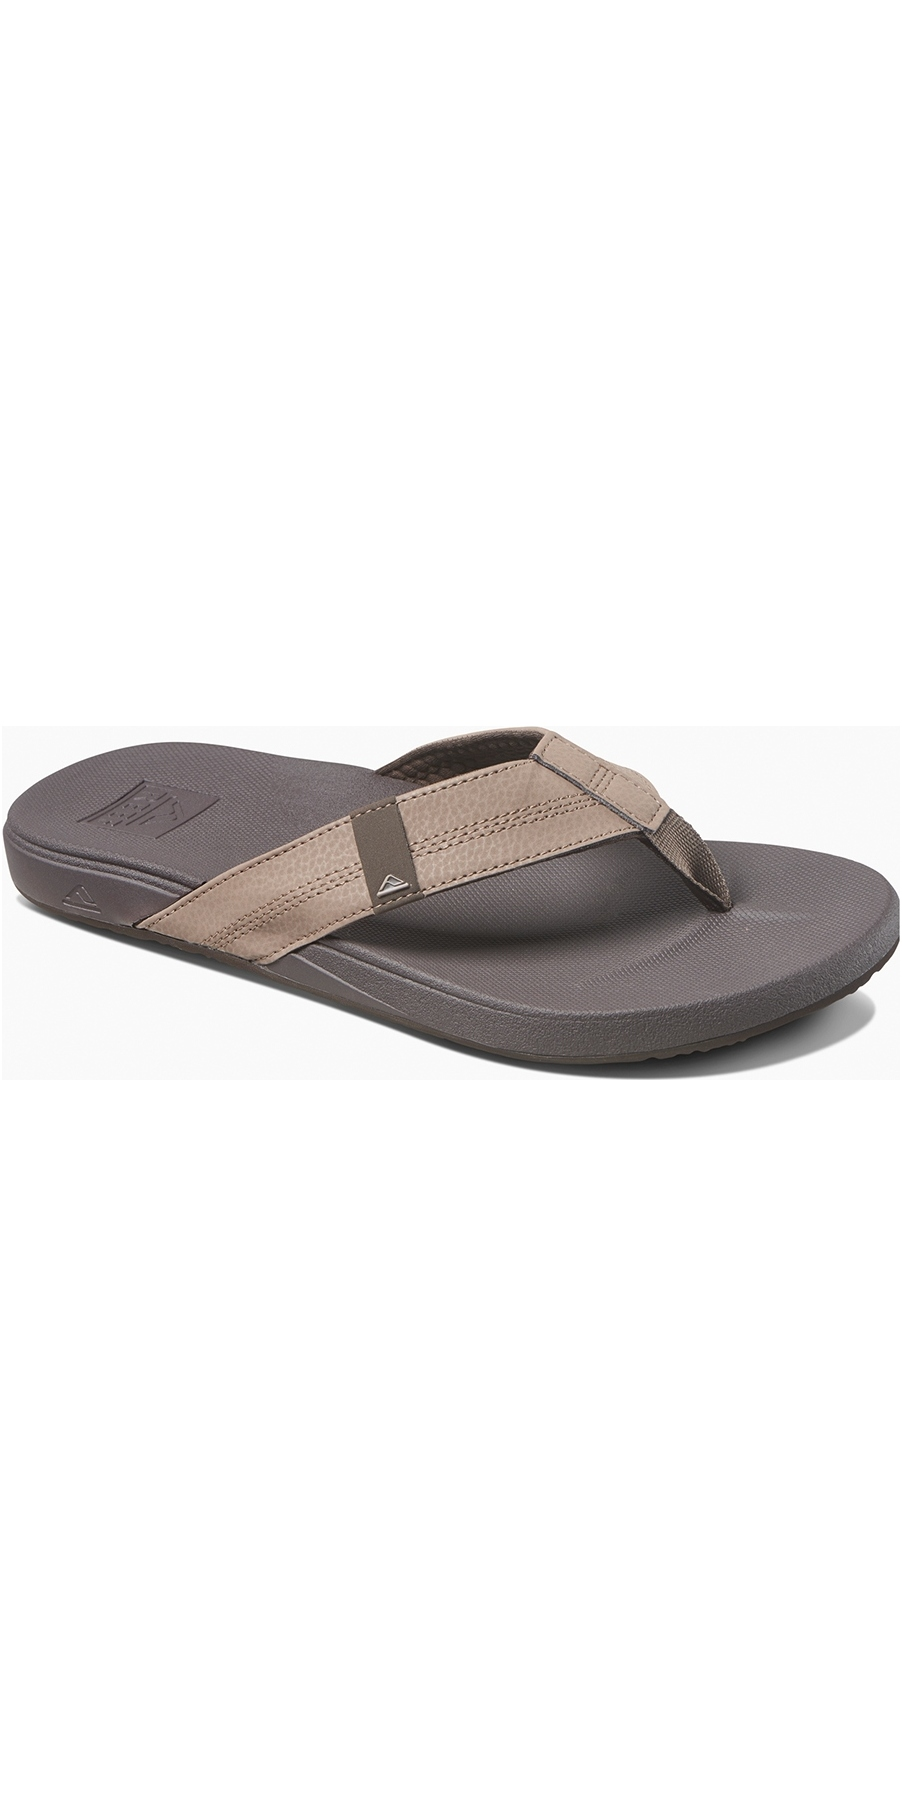 detailed look 31fb3 ddf5a 2019 Reef Herren Kissen Bounce Phantom Sandalen / Flip Flops Braun Rf0a3fdi